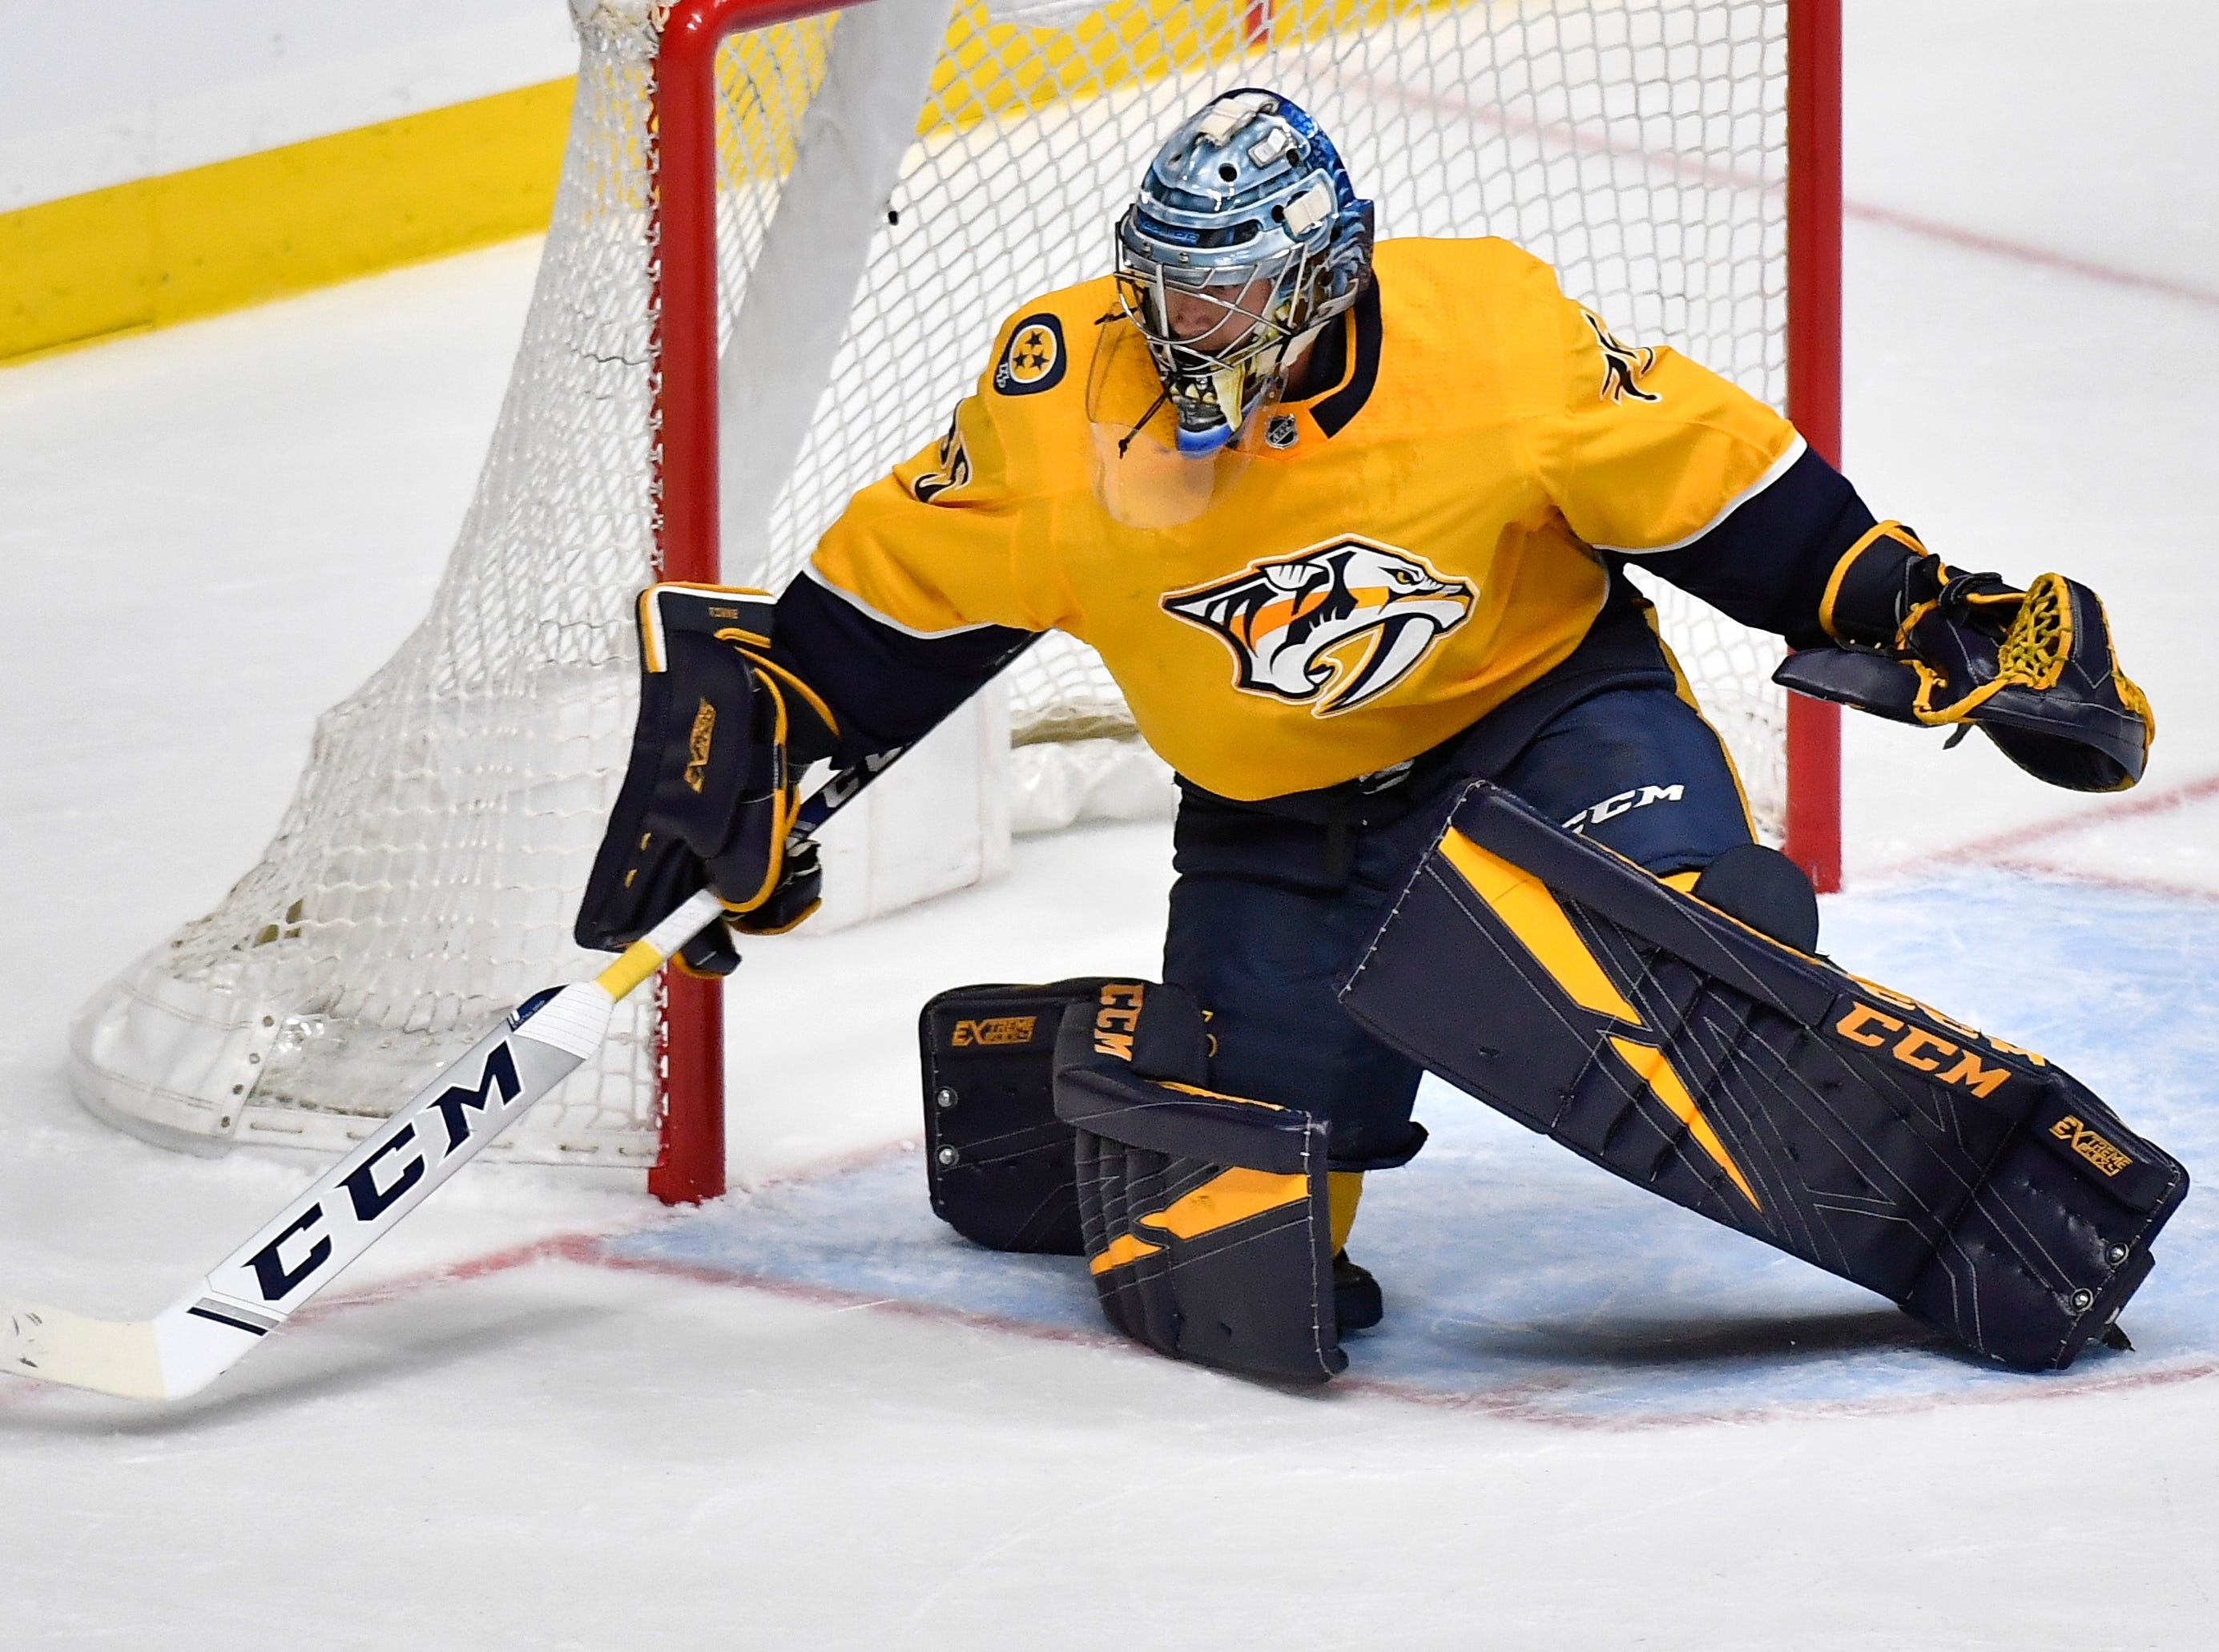 Nashville Predators goaltender Pekka Rinne (35) plays a puck wide during the first period of the divisional semifinal game against the Dallas Stars at Bridgestone Arena in Nashville, Tenn., Saturday, April 13, 2019.